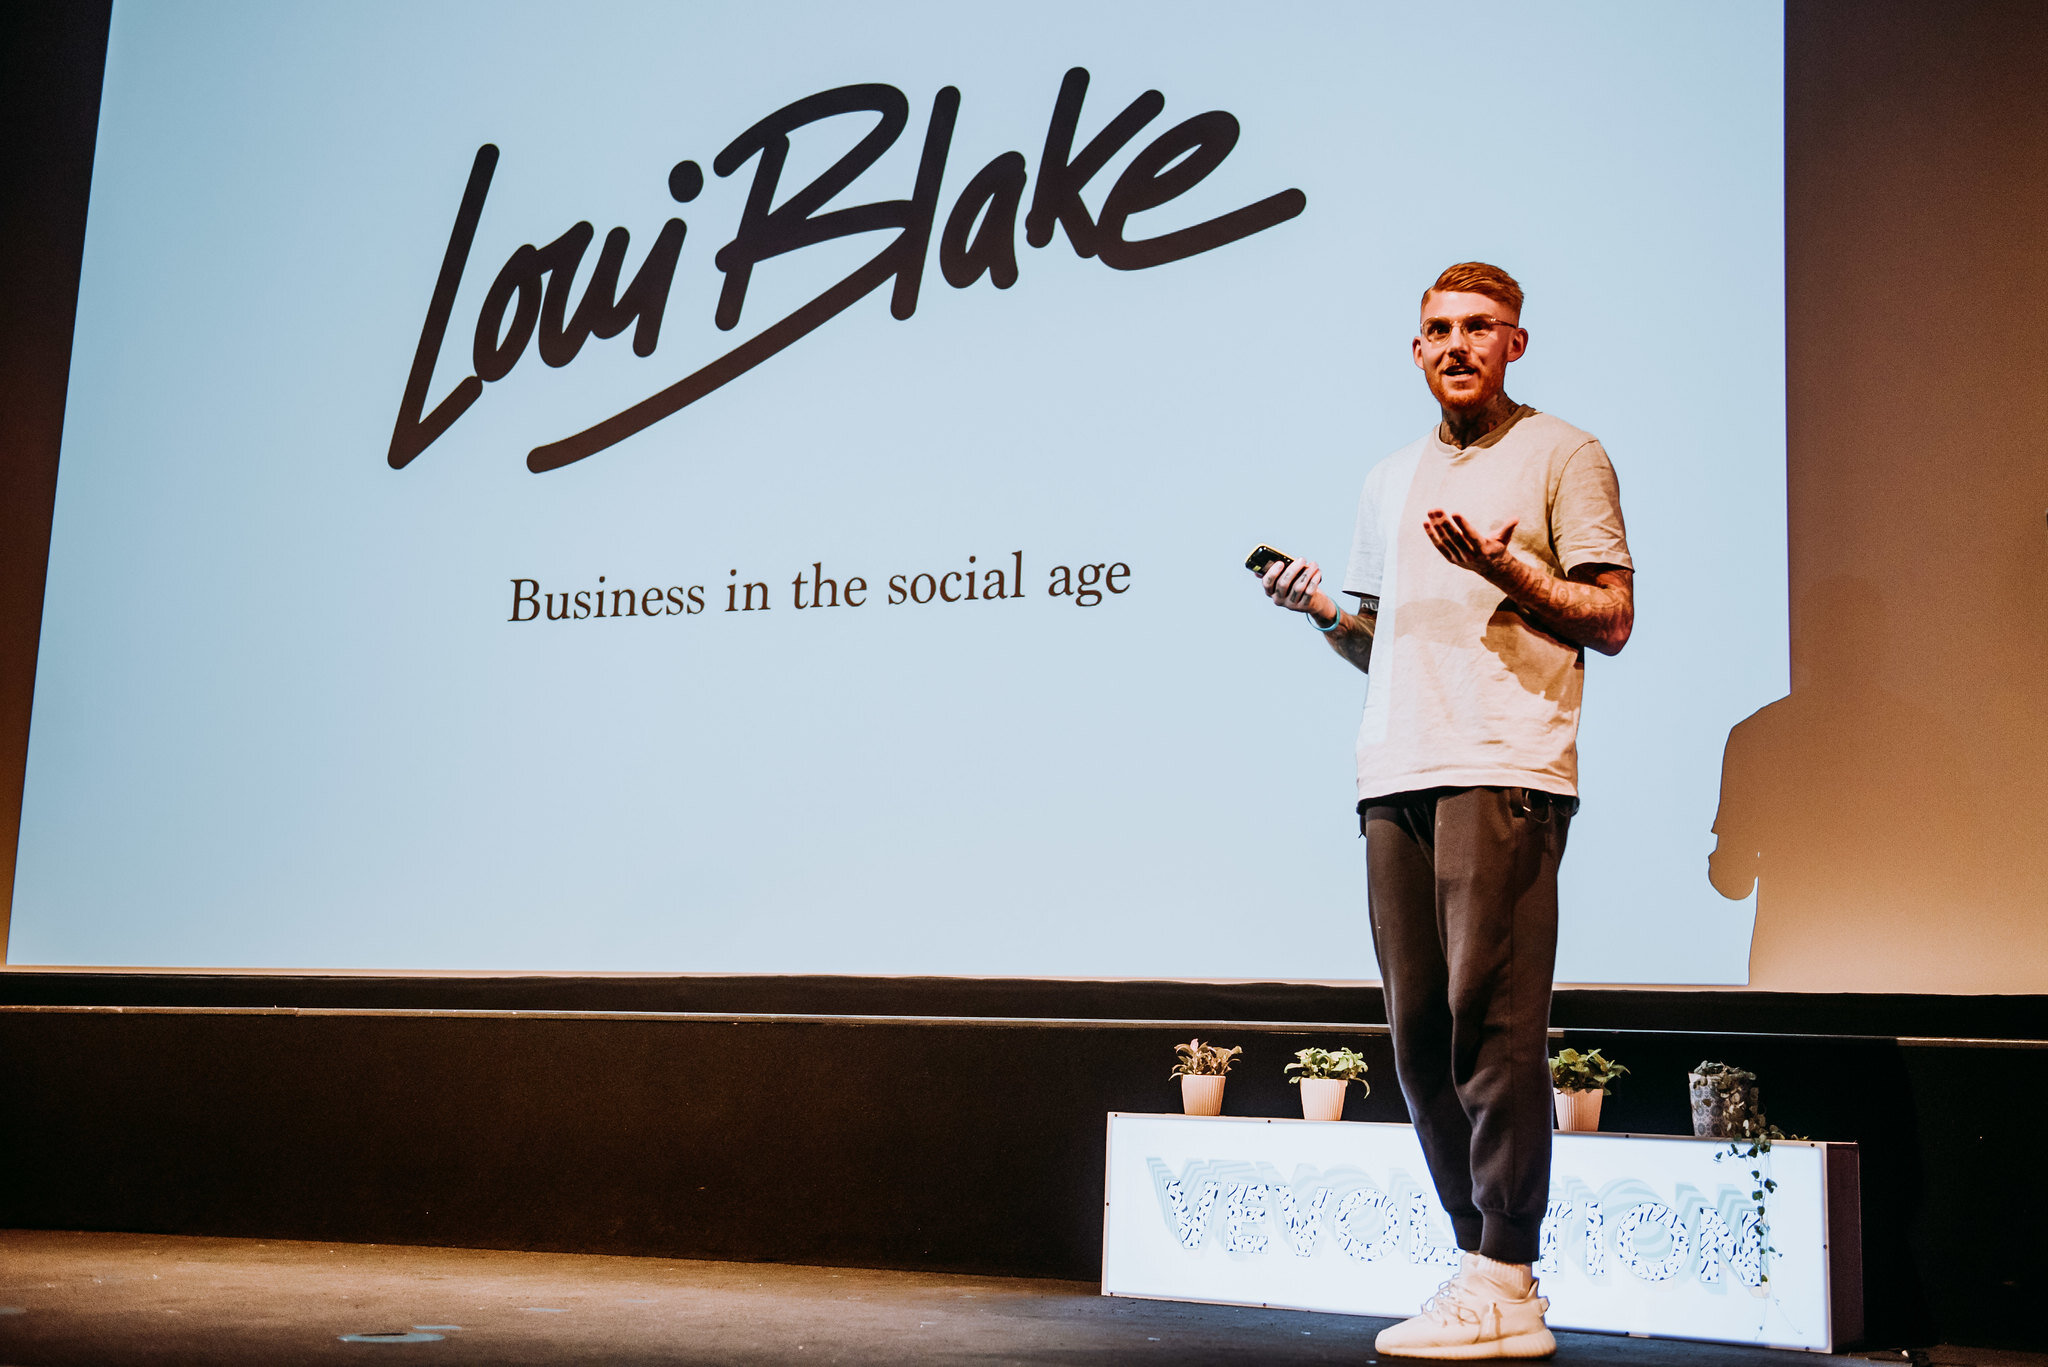 Loui Blake, Co-Founder of Erpingham House at Vevolution Festival 2019